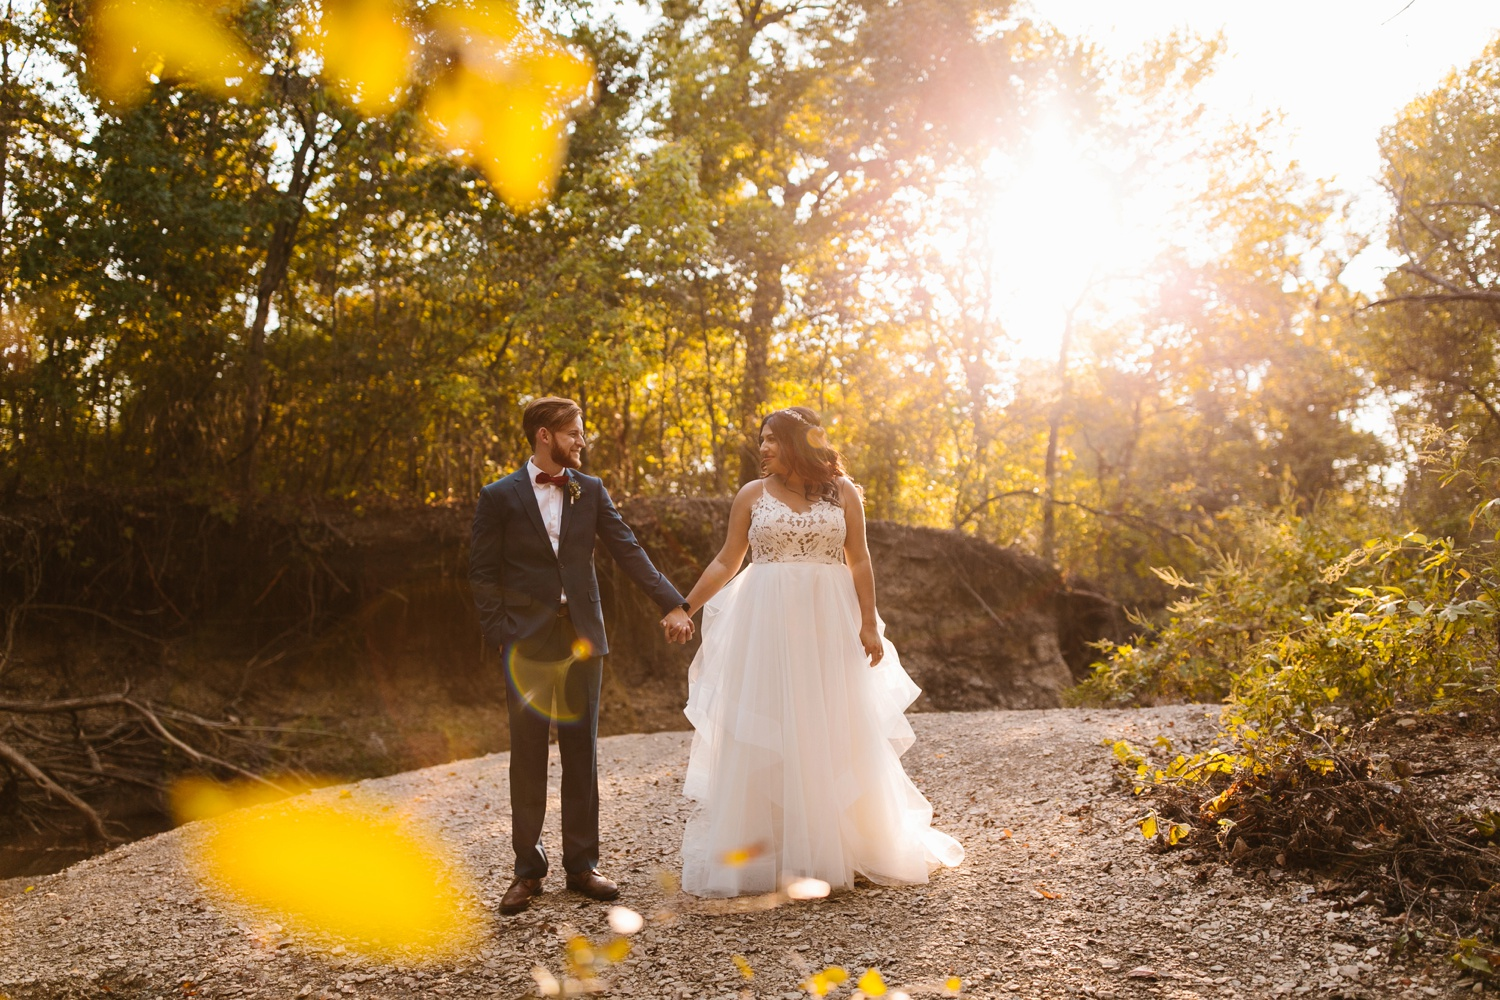 Grant + Lysette | a vibrant, deep burgundy and navy, and mixed metals wedding at Hidden Pines Chapel by North Texas Wedding Photographer Rachel Meagan Photography 200